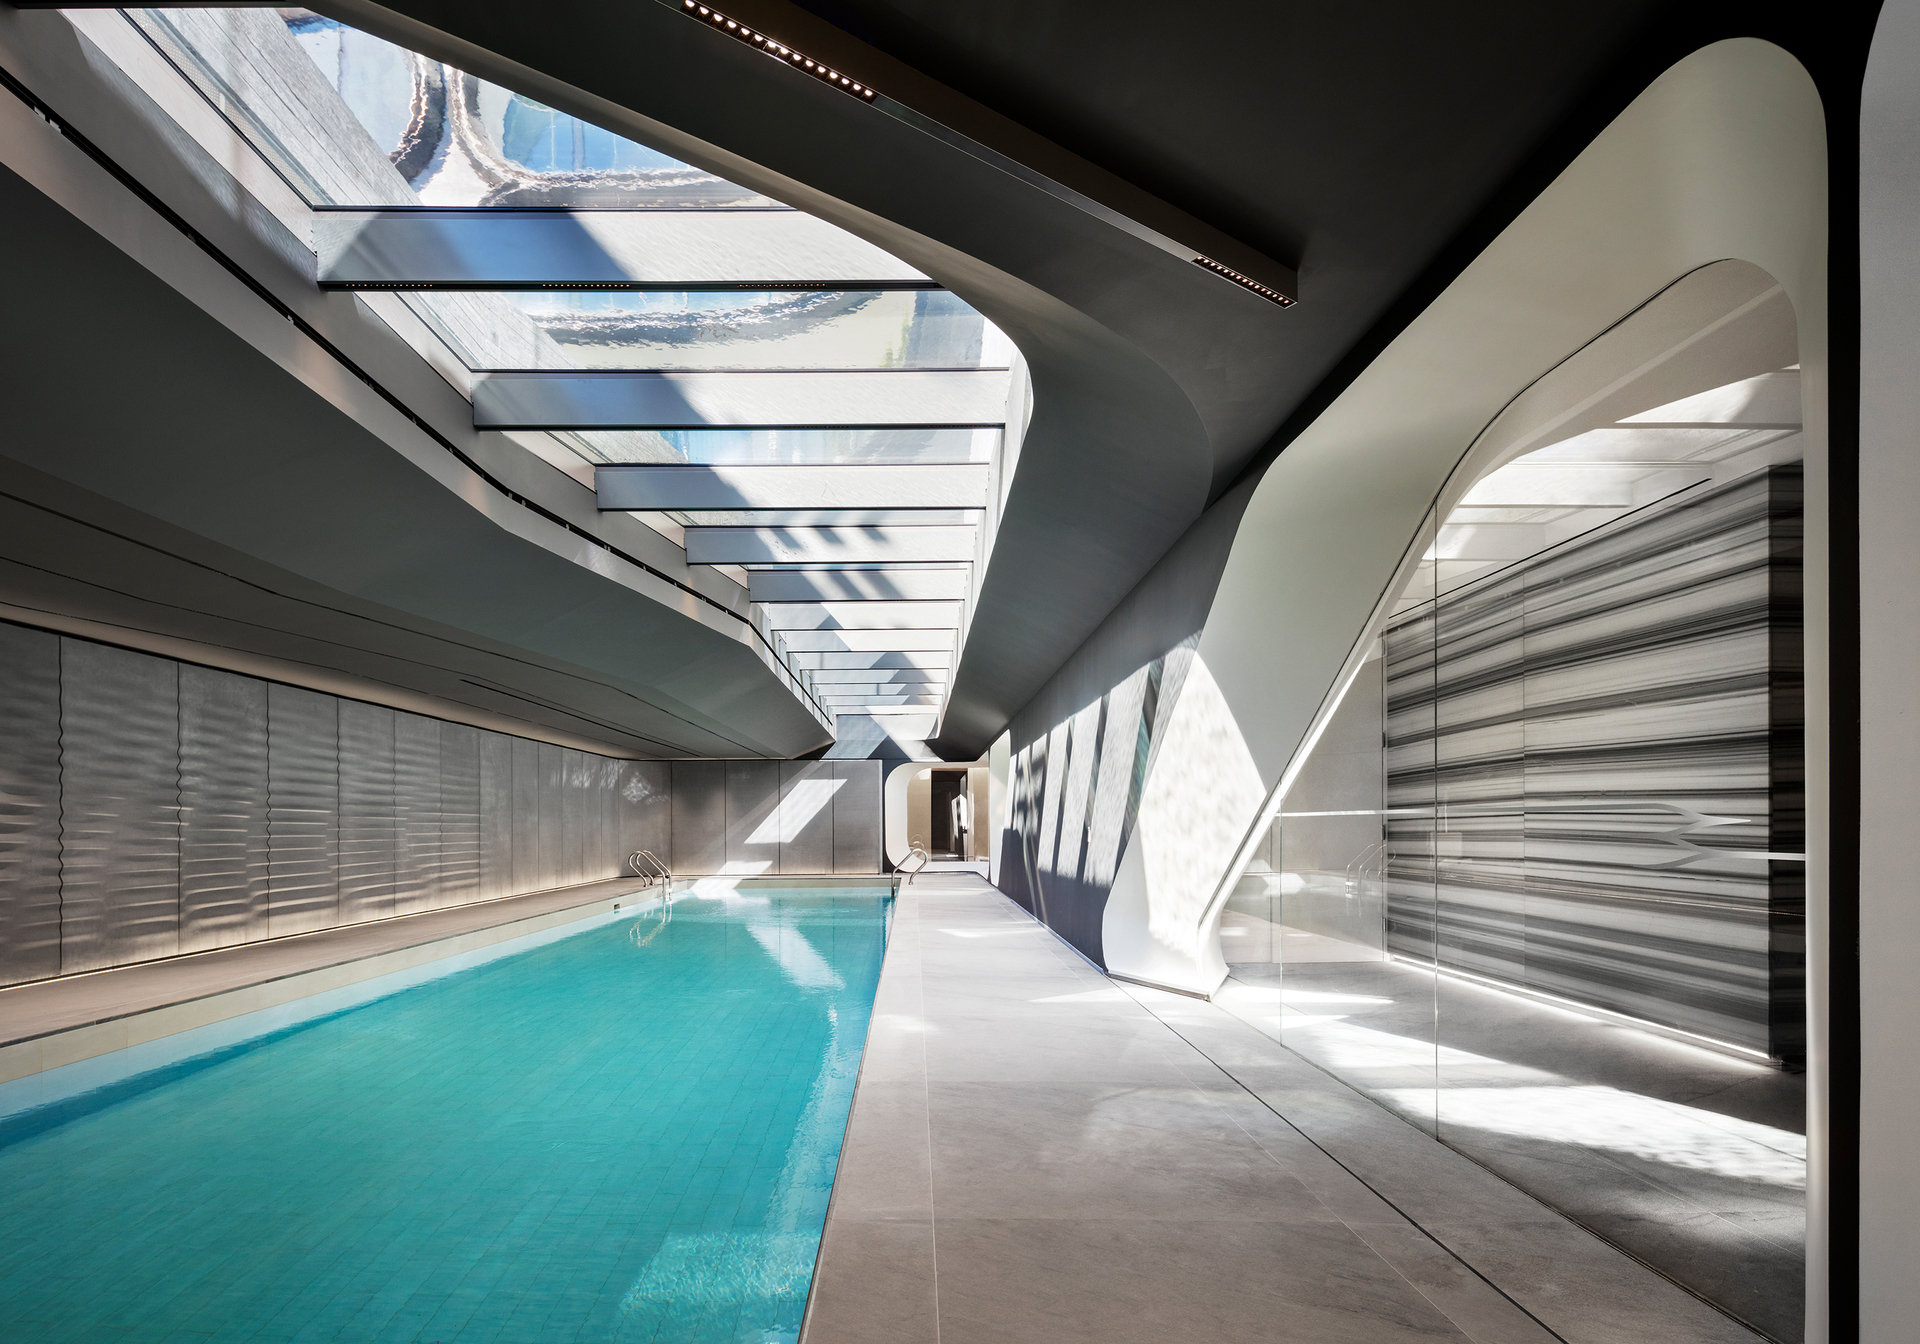 One of a kind pool, showcasing Infinity Drain, at 520 West 28th condos.